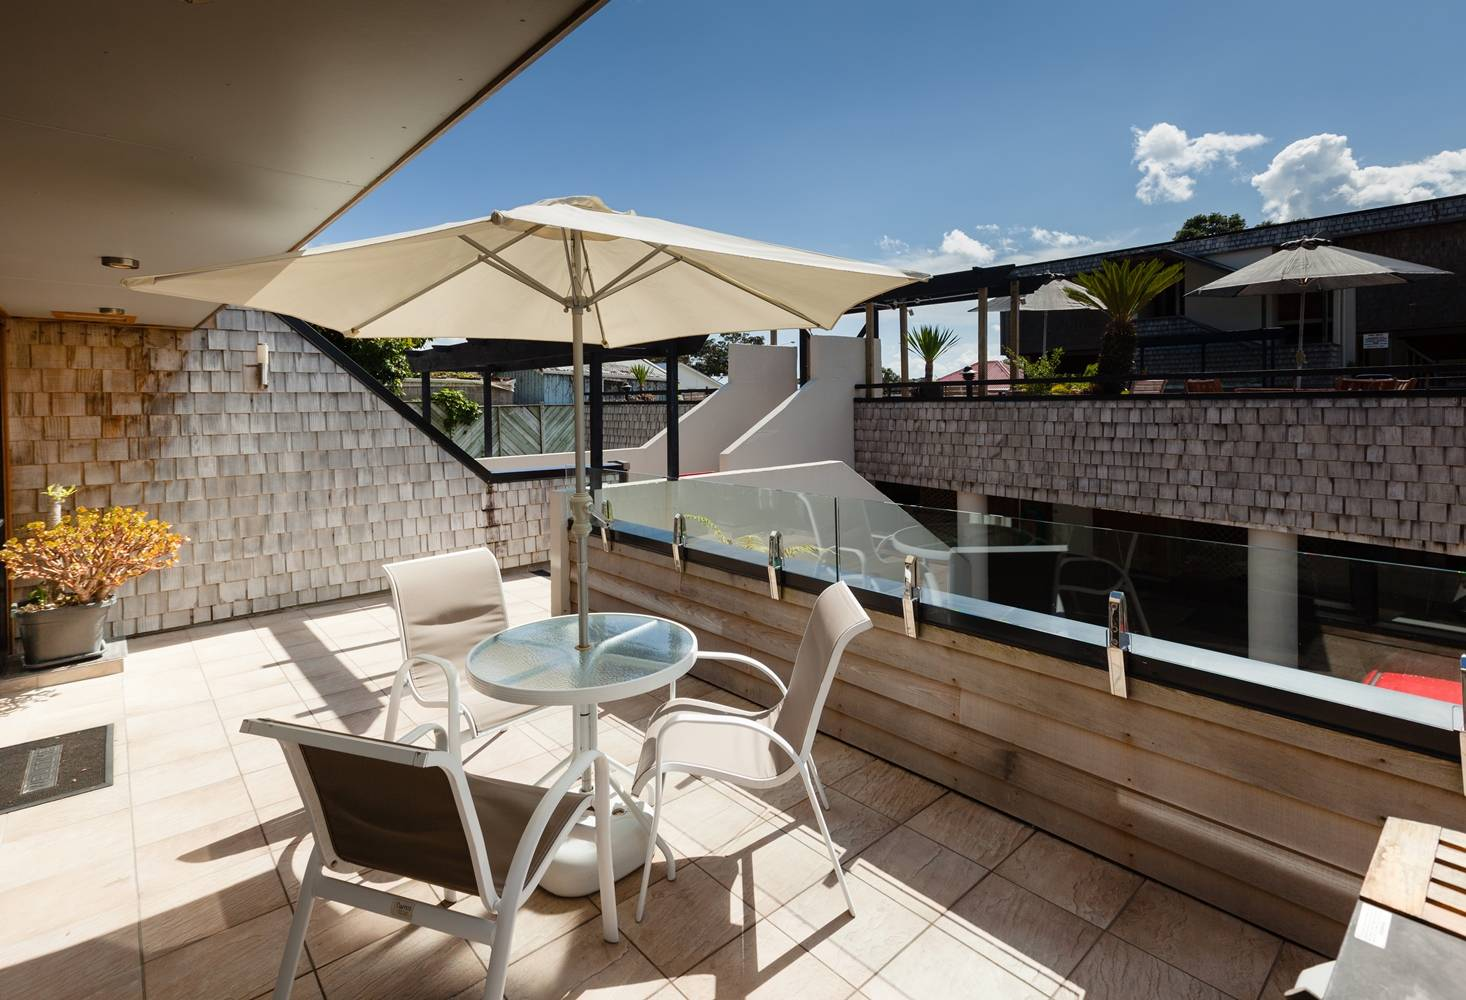 pioneer-apartments-paihia-pool-view-garden-level-deck.jpg